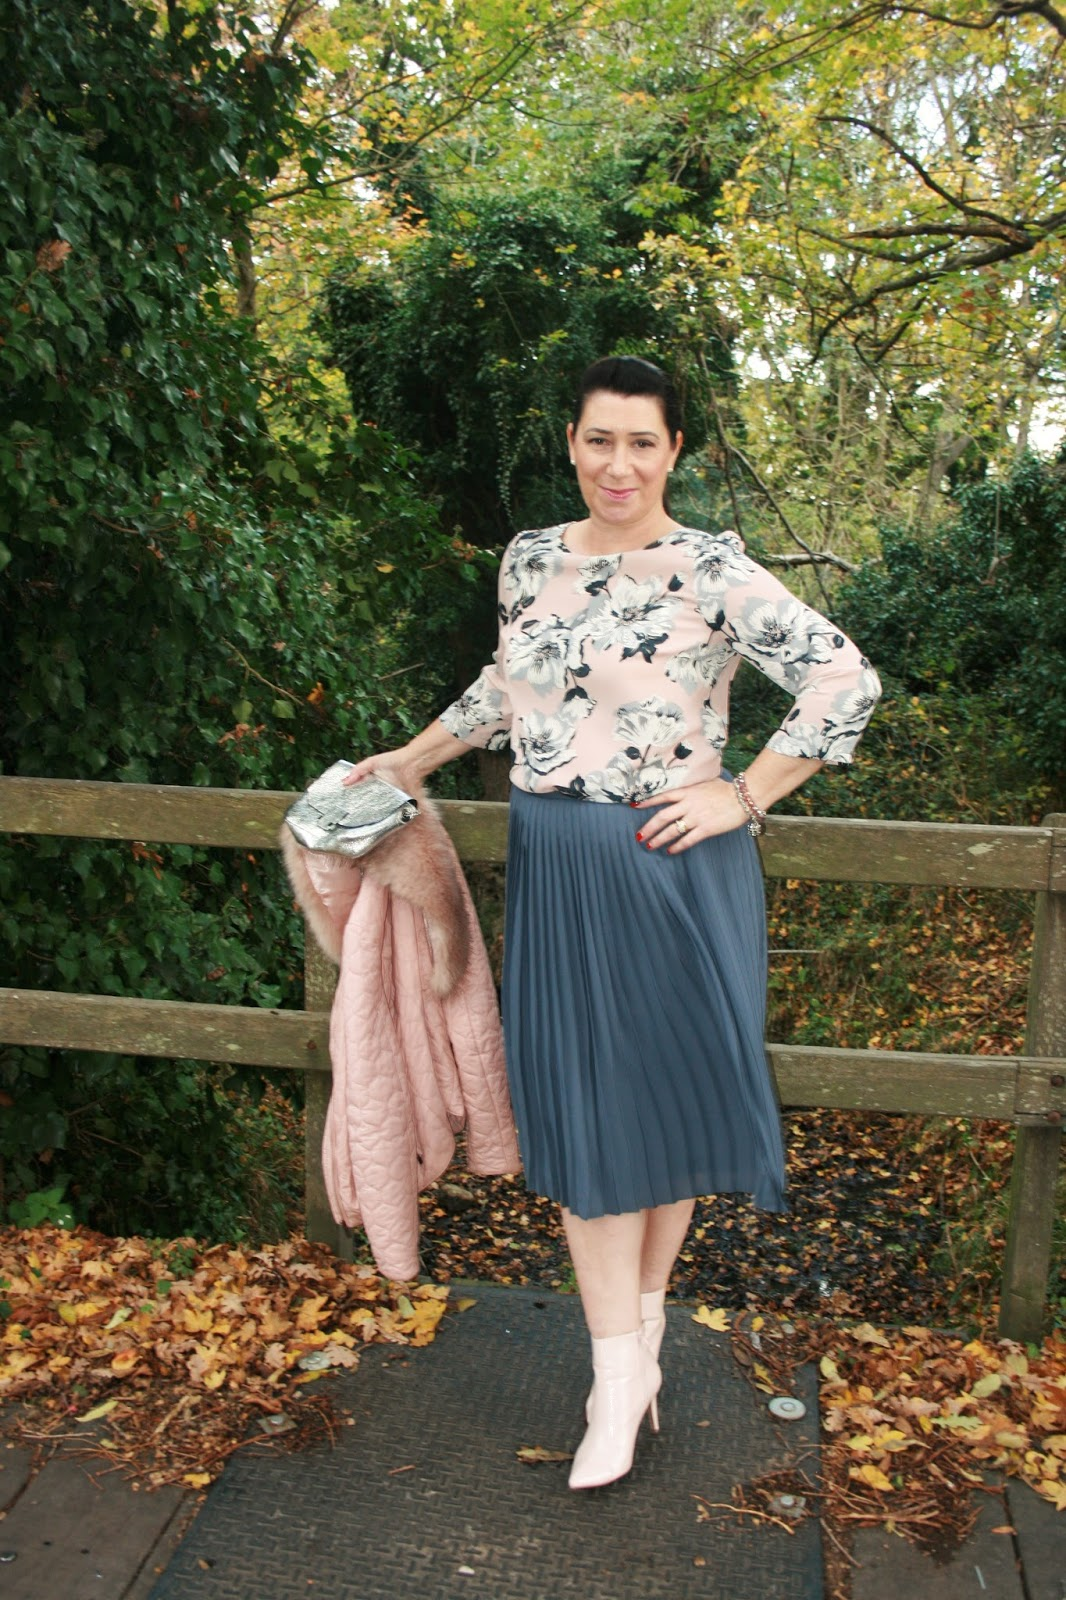 Image showing over 40 blogger Jacqui Berry from Mummabstylish in pink patent ankle boots and grey pleated skirt